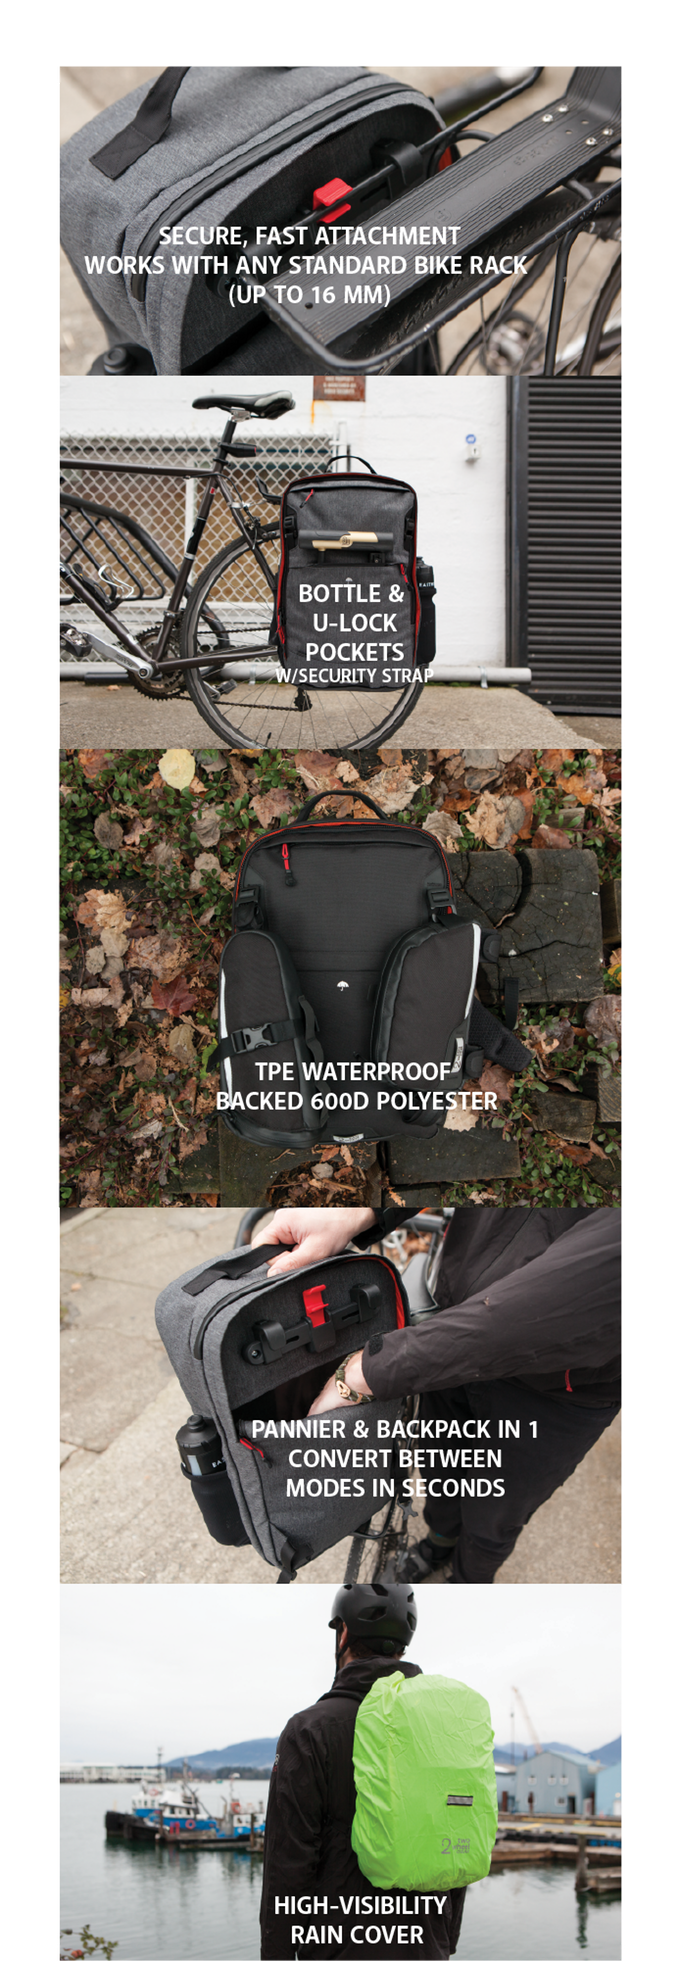 Two Wheel Gear - Pannier Backpack Convertible - Features